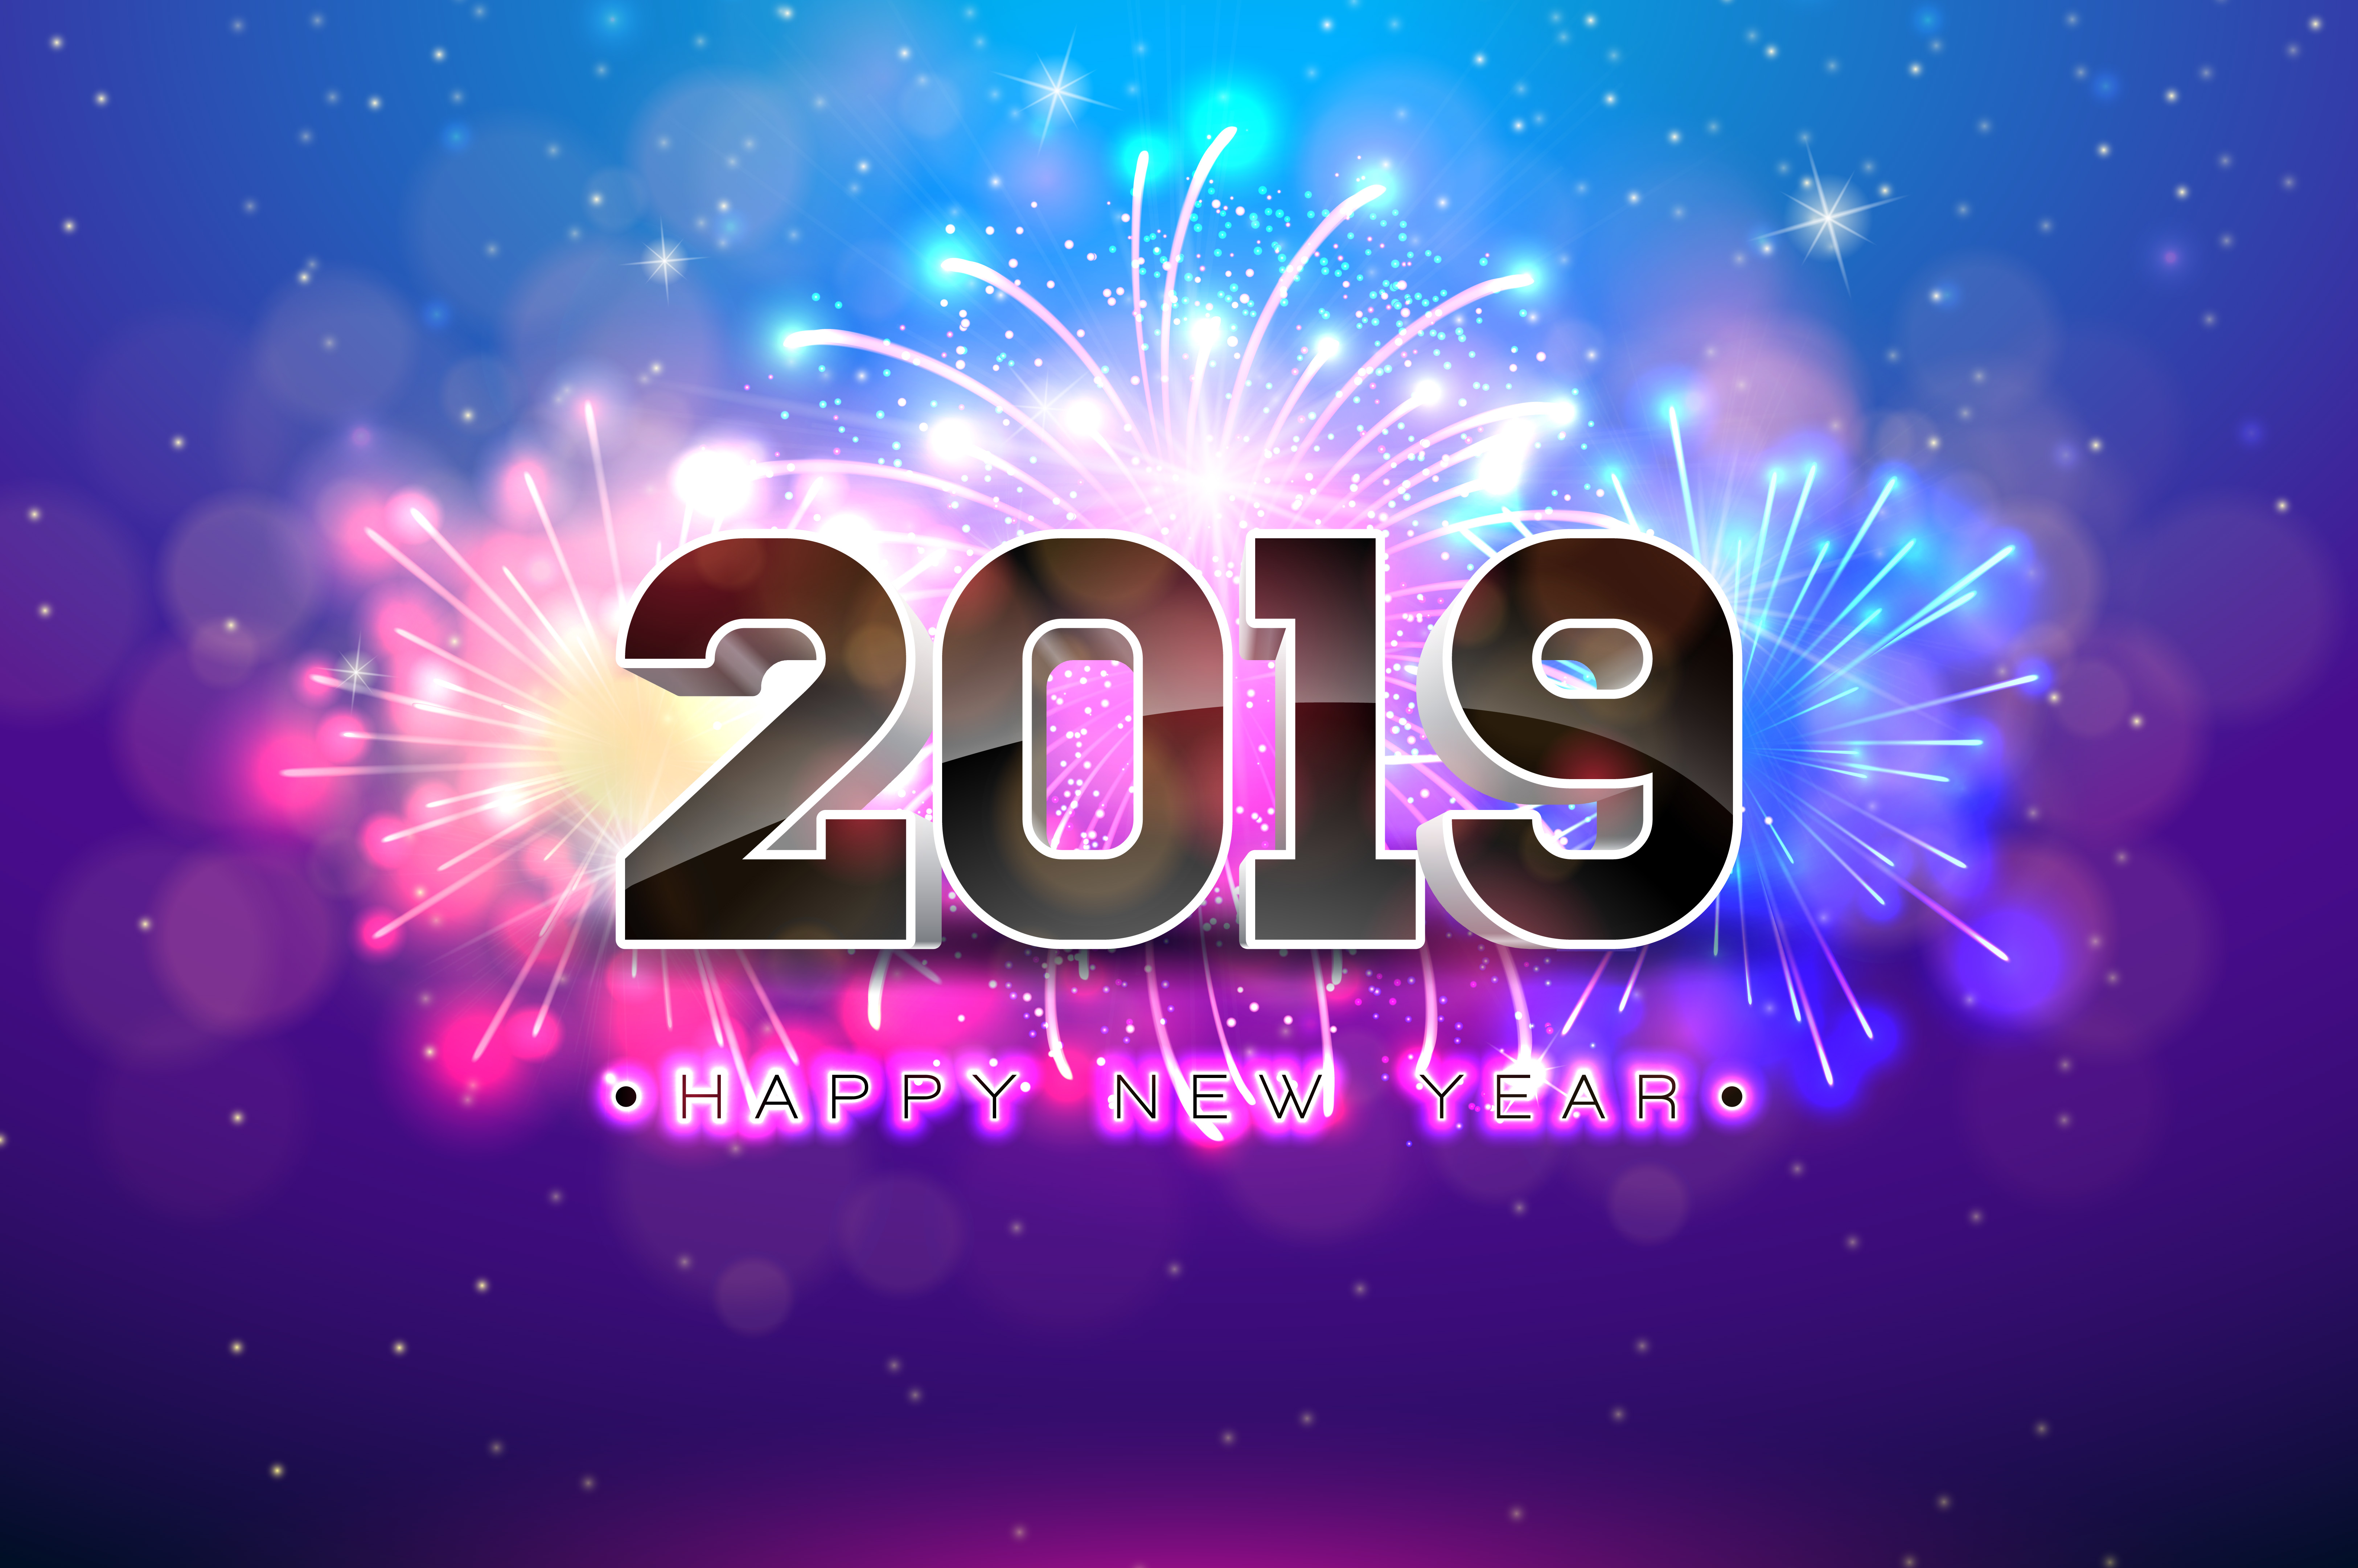 Happy New Year 2019 illustration - Download Free Vectors ...